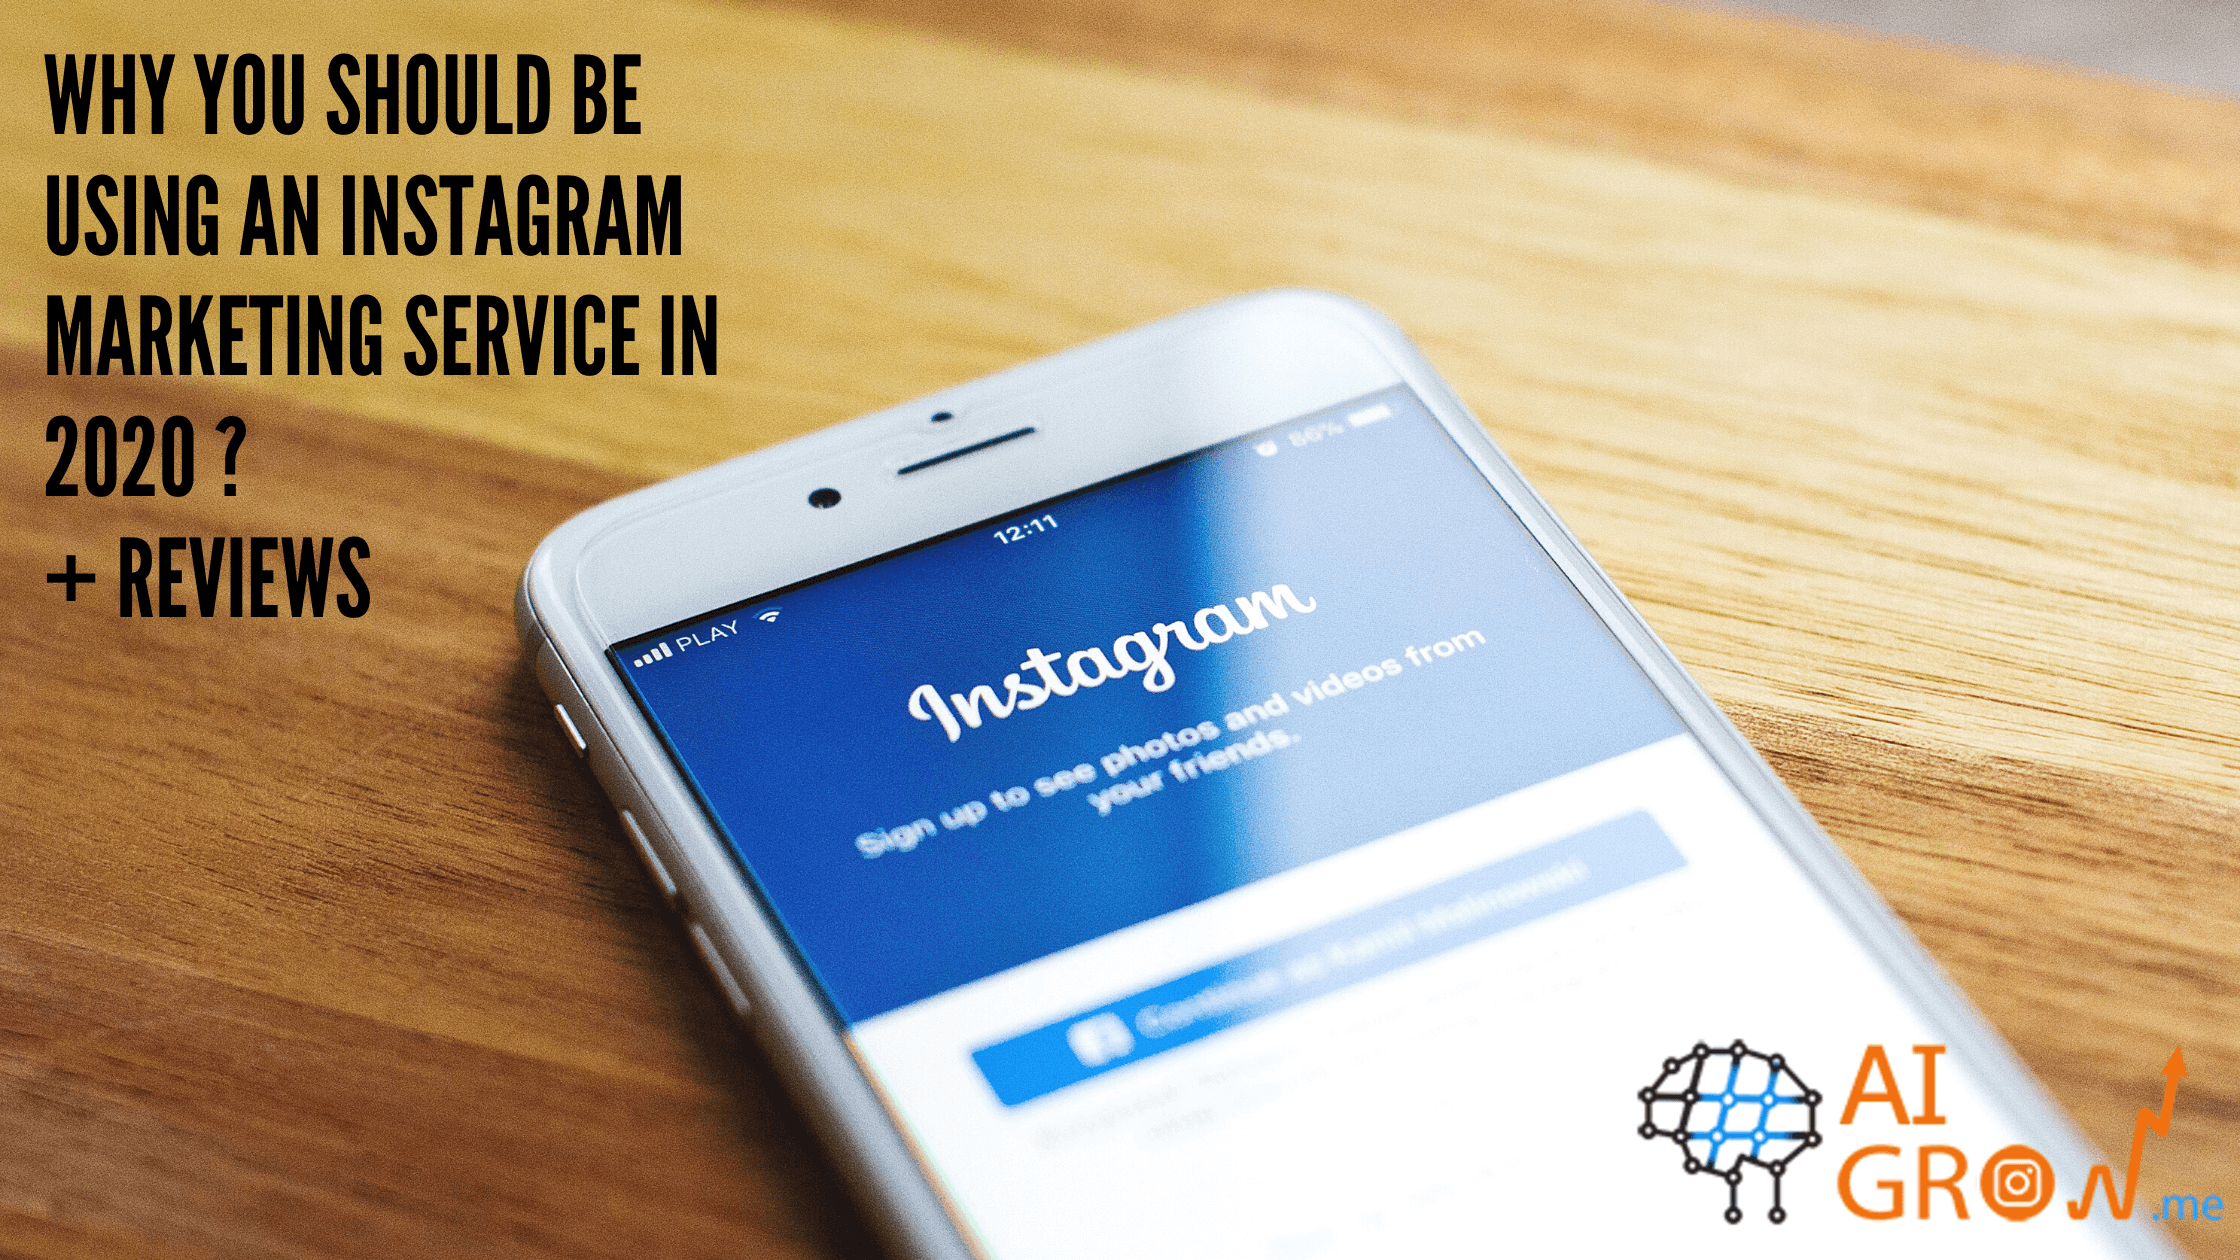 Why you should be using an Instagram marketing service in 2020 + Reviews